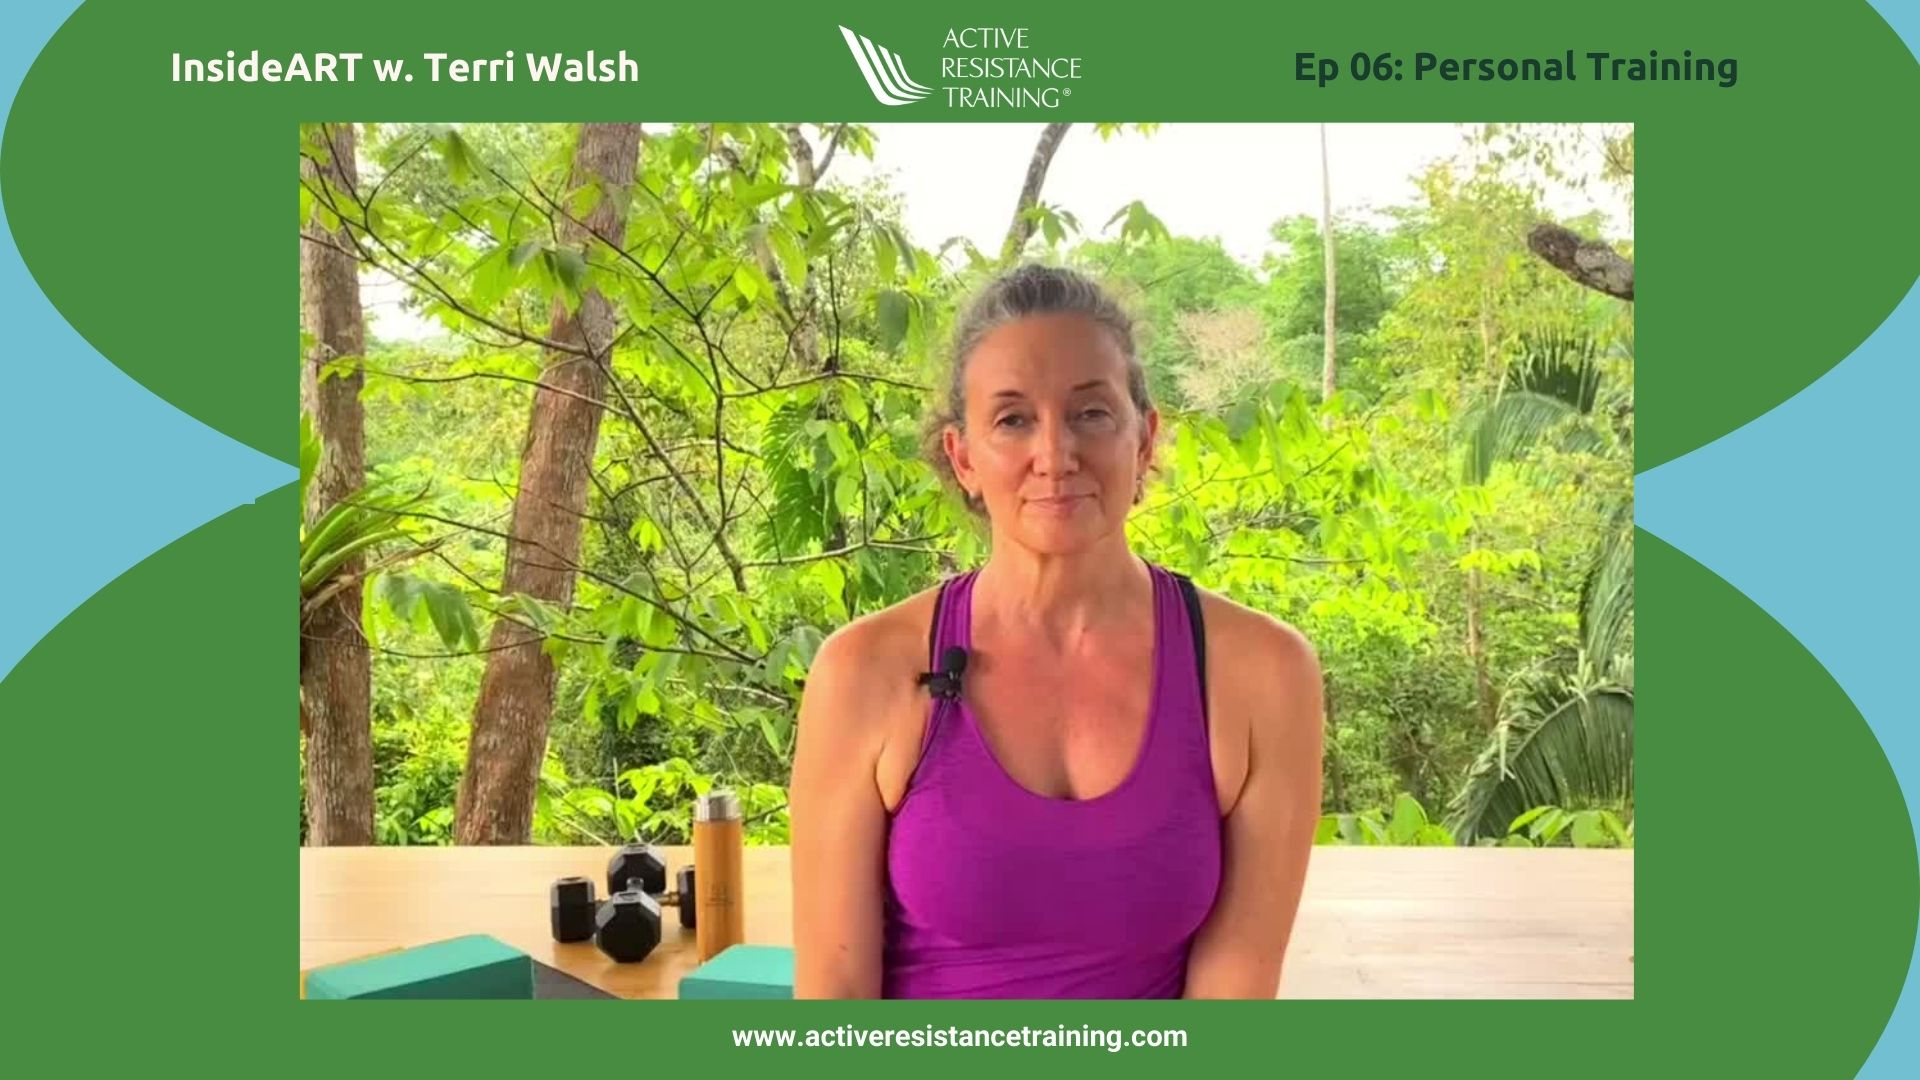 INSIDEART: personal training with terri walsh